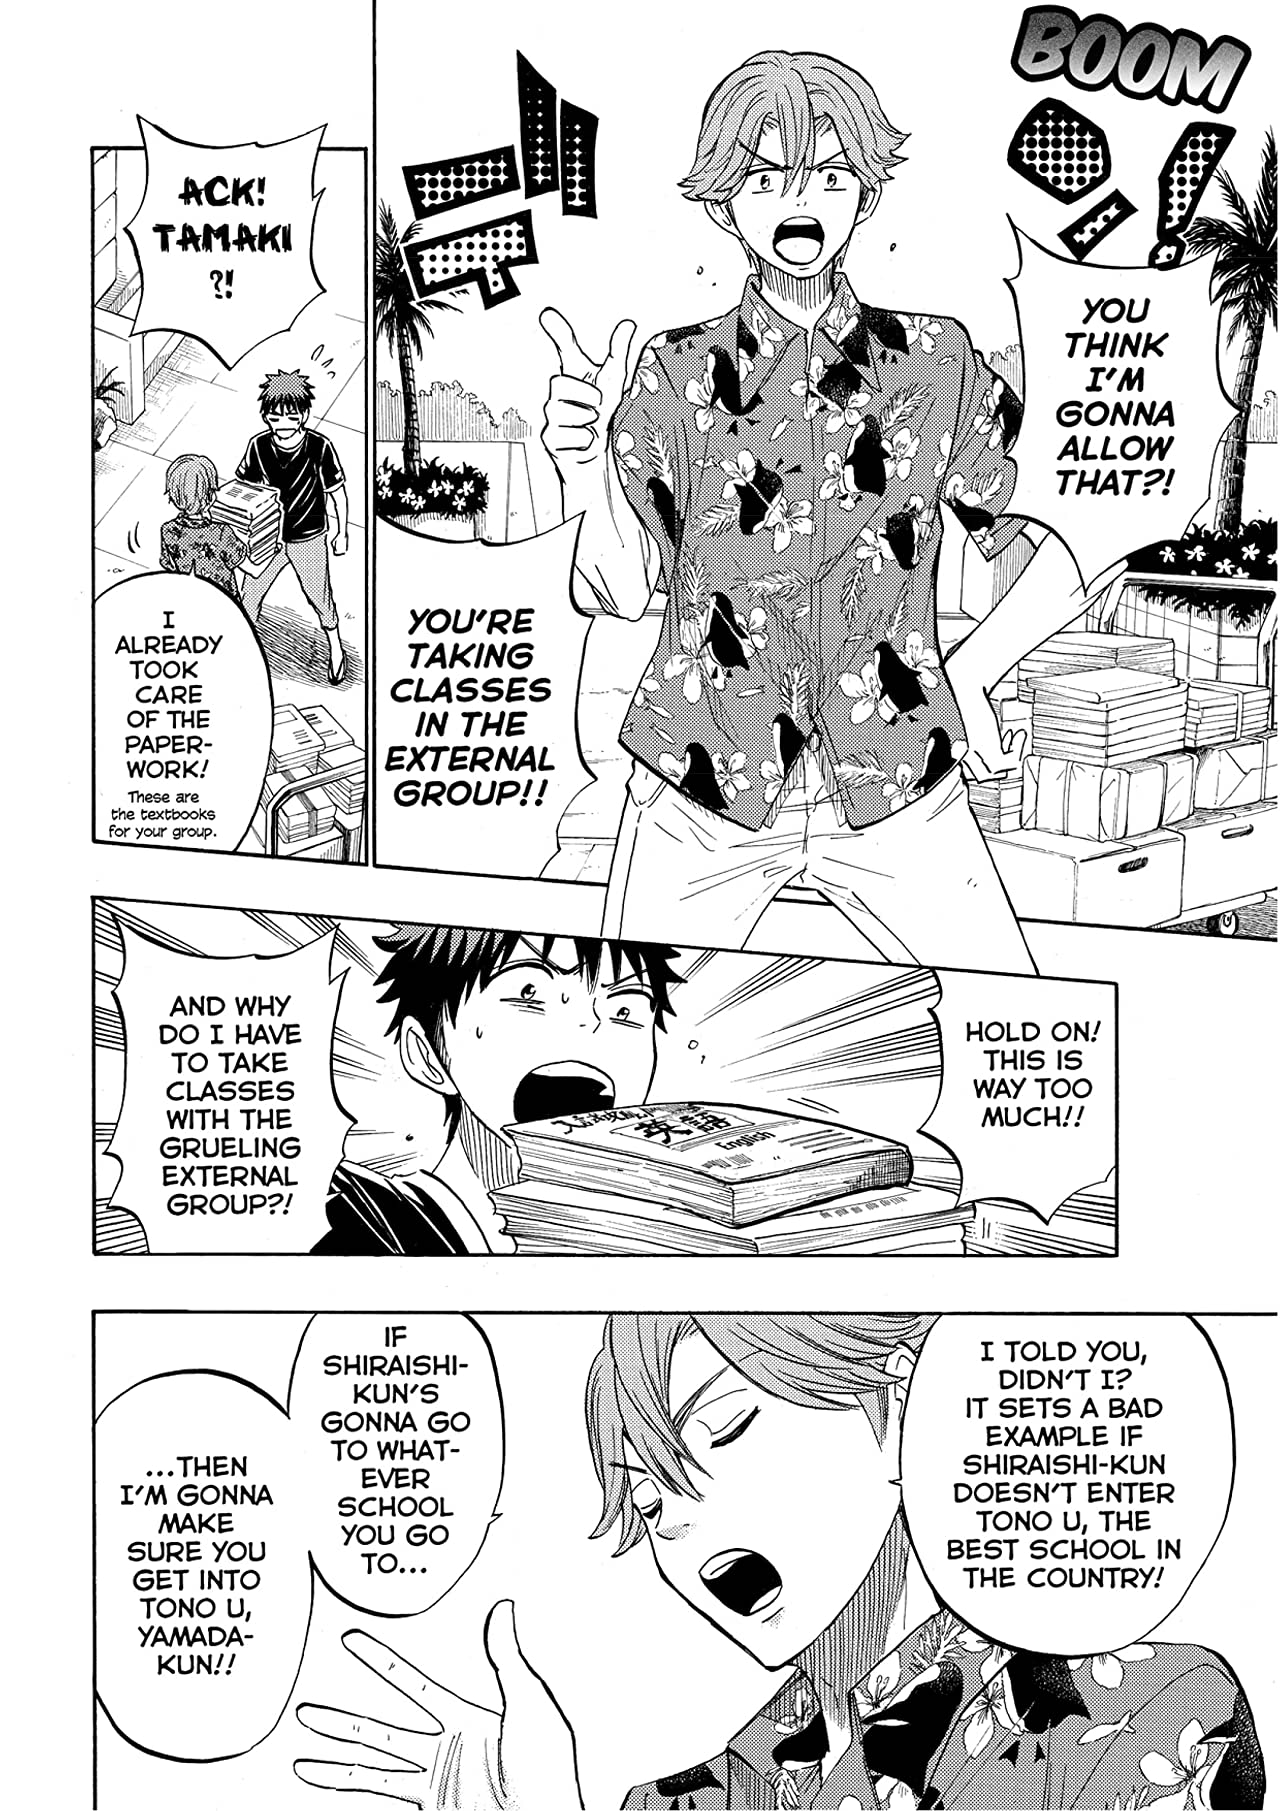 Yamada-kun and the Seven Witches #227